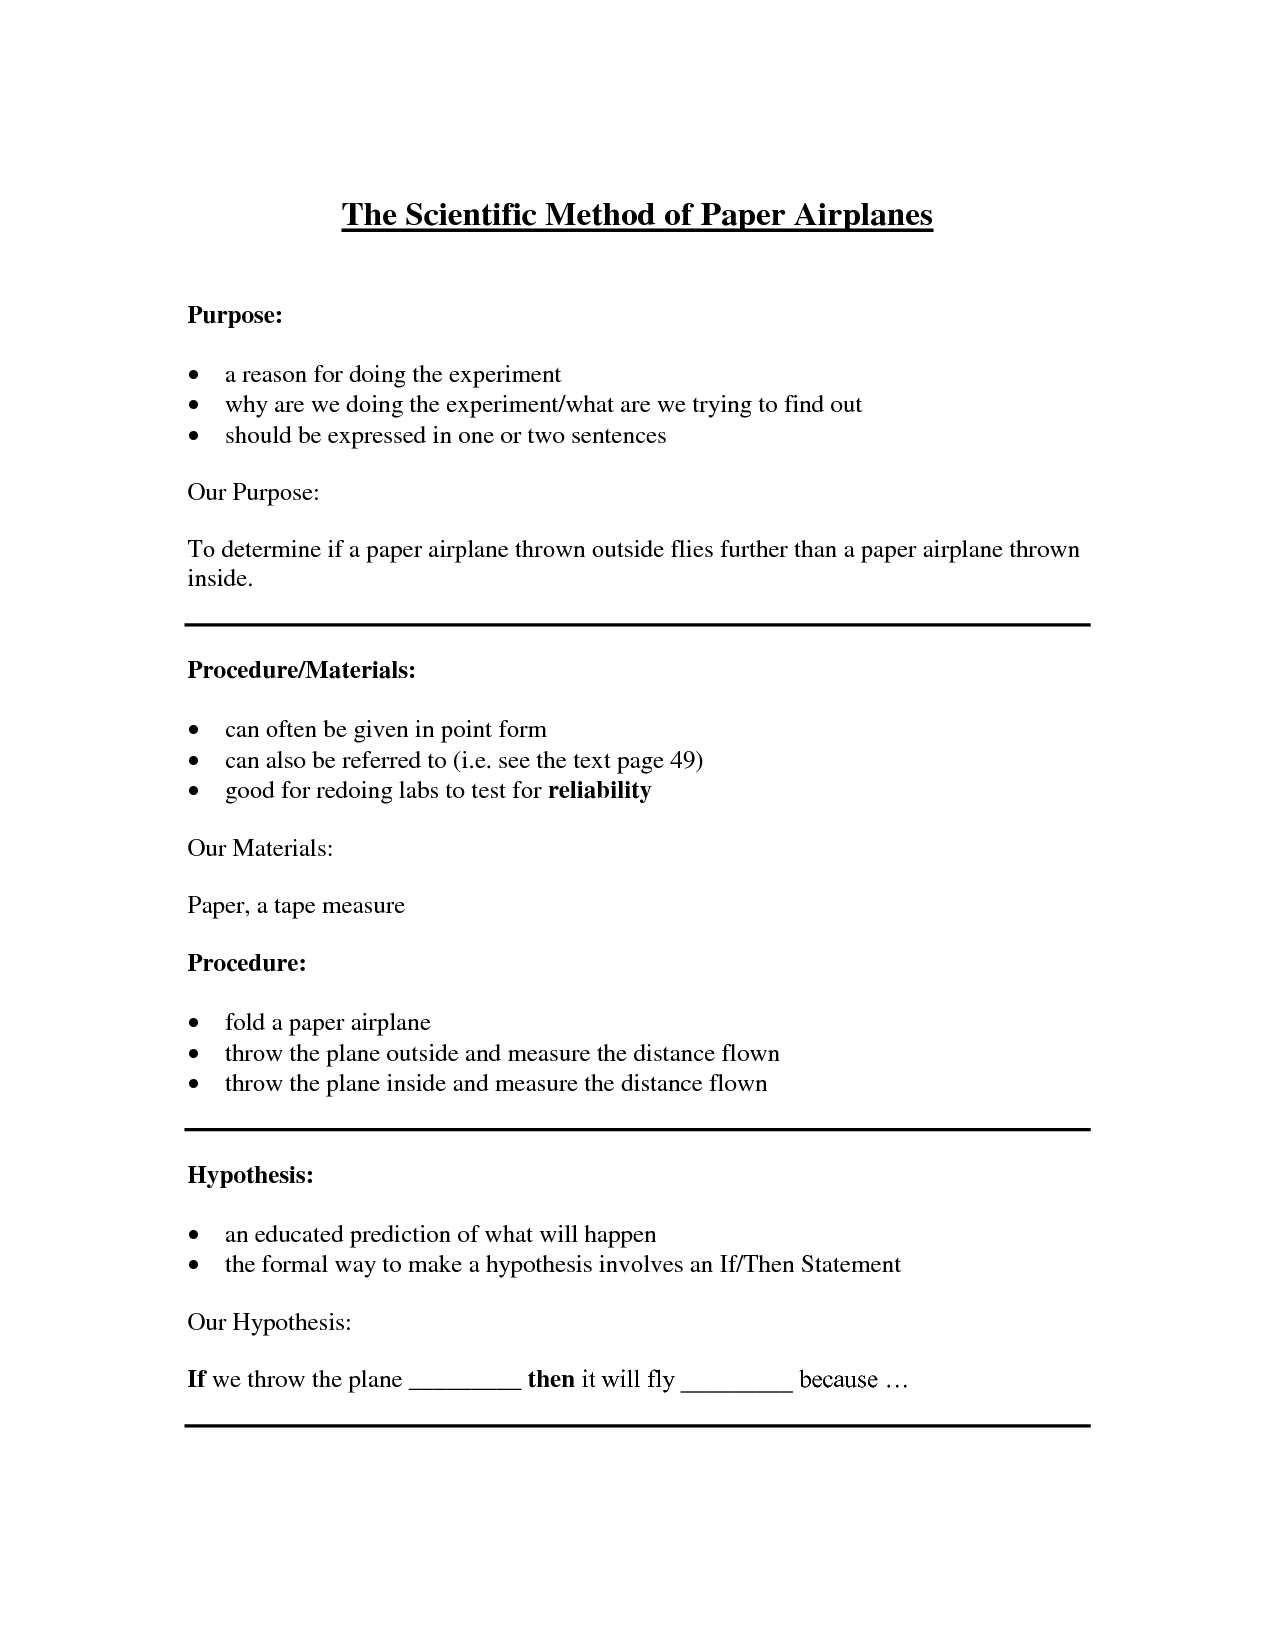 Foldables for Science | The Scientific Method of Paper ...